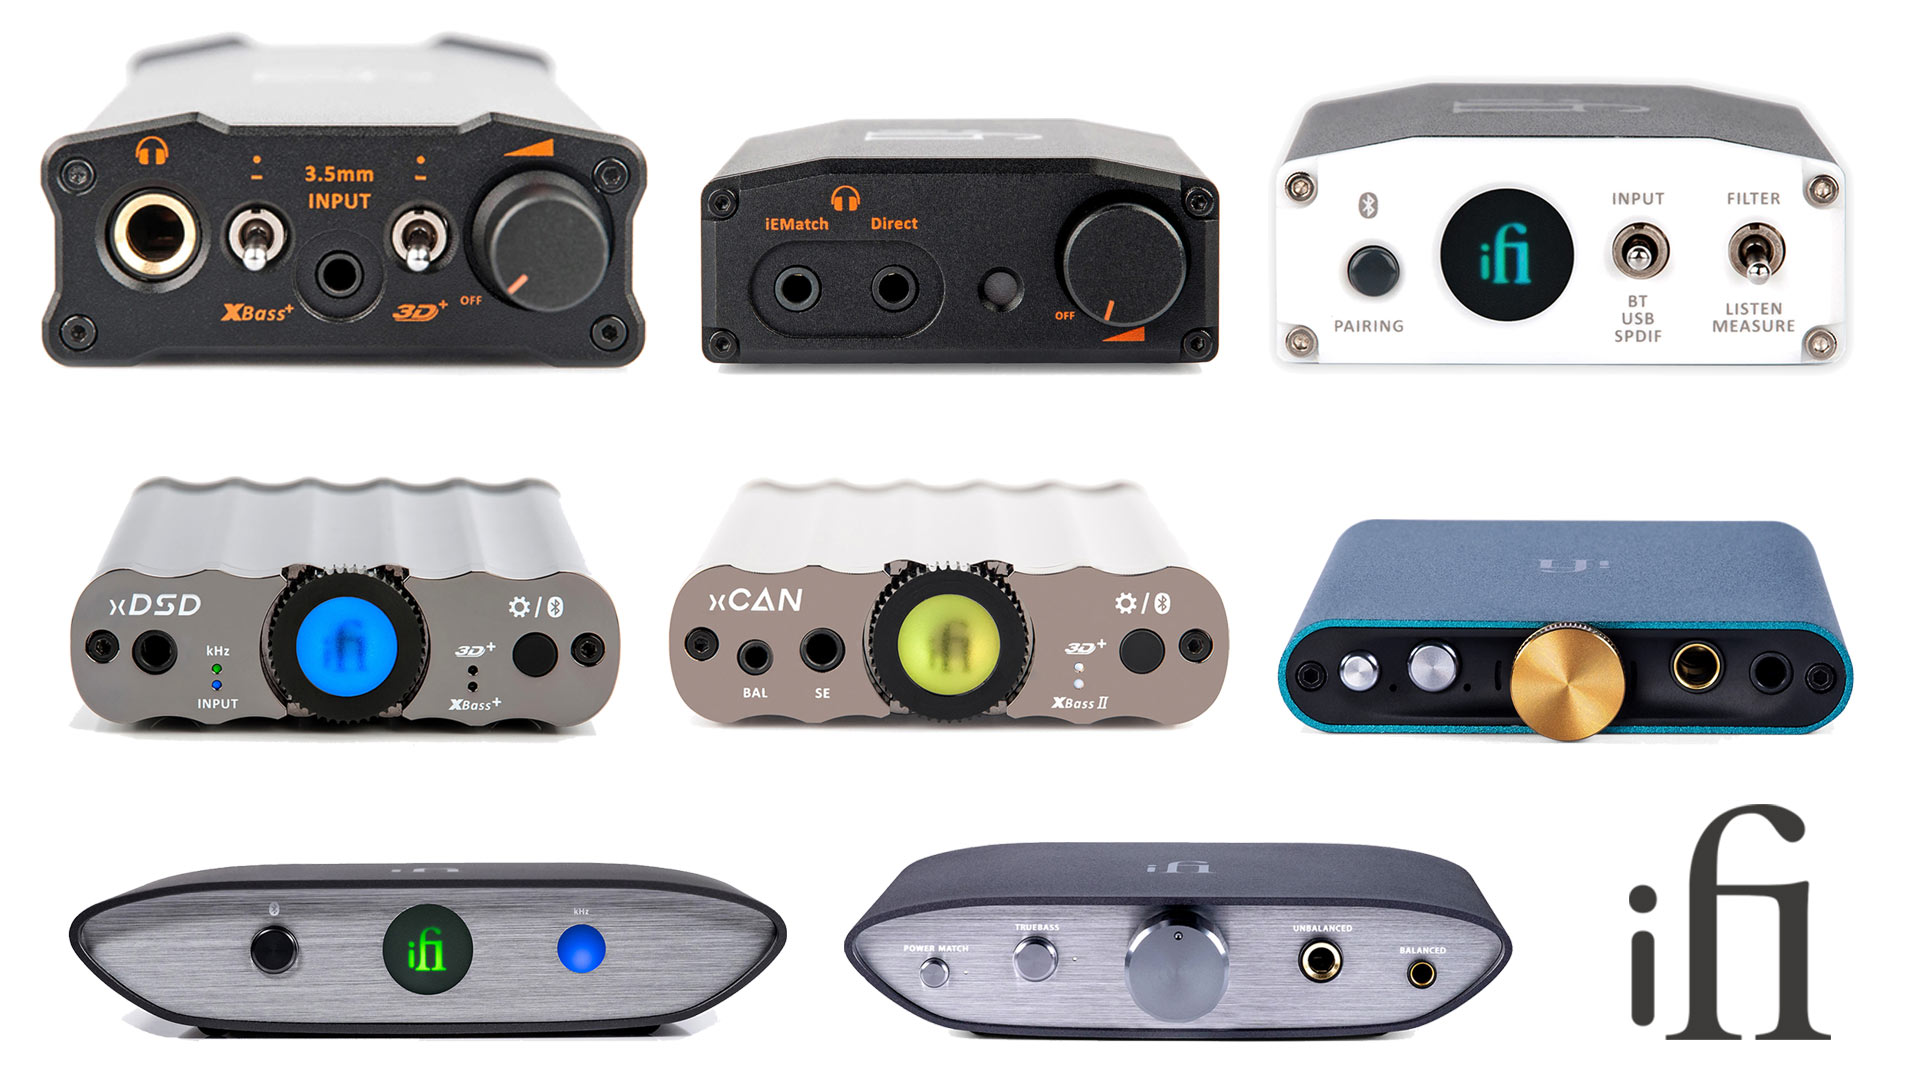 iFi Audio Product Range | Unilet Sound & Vison